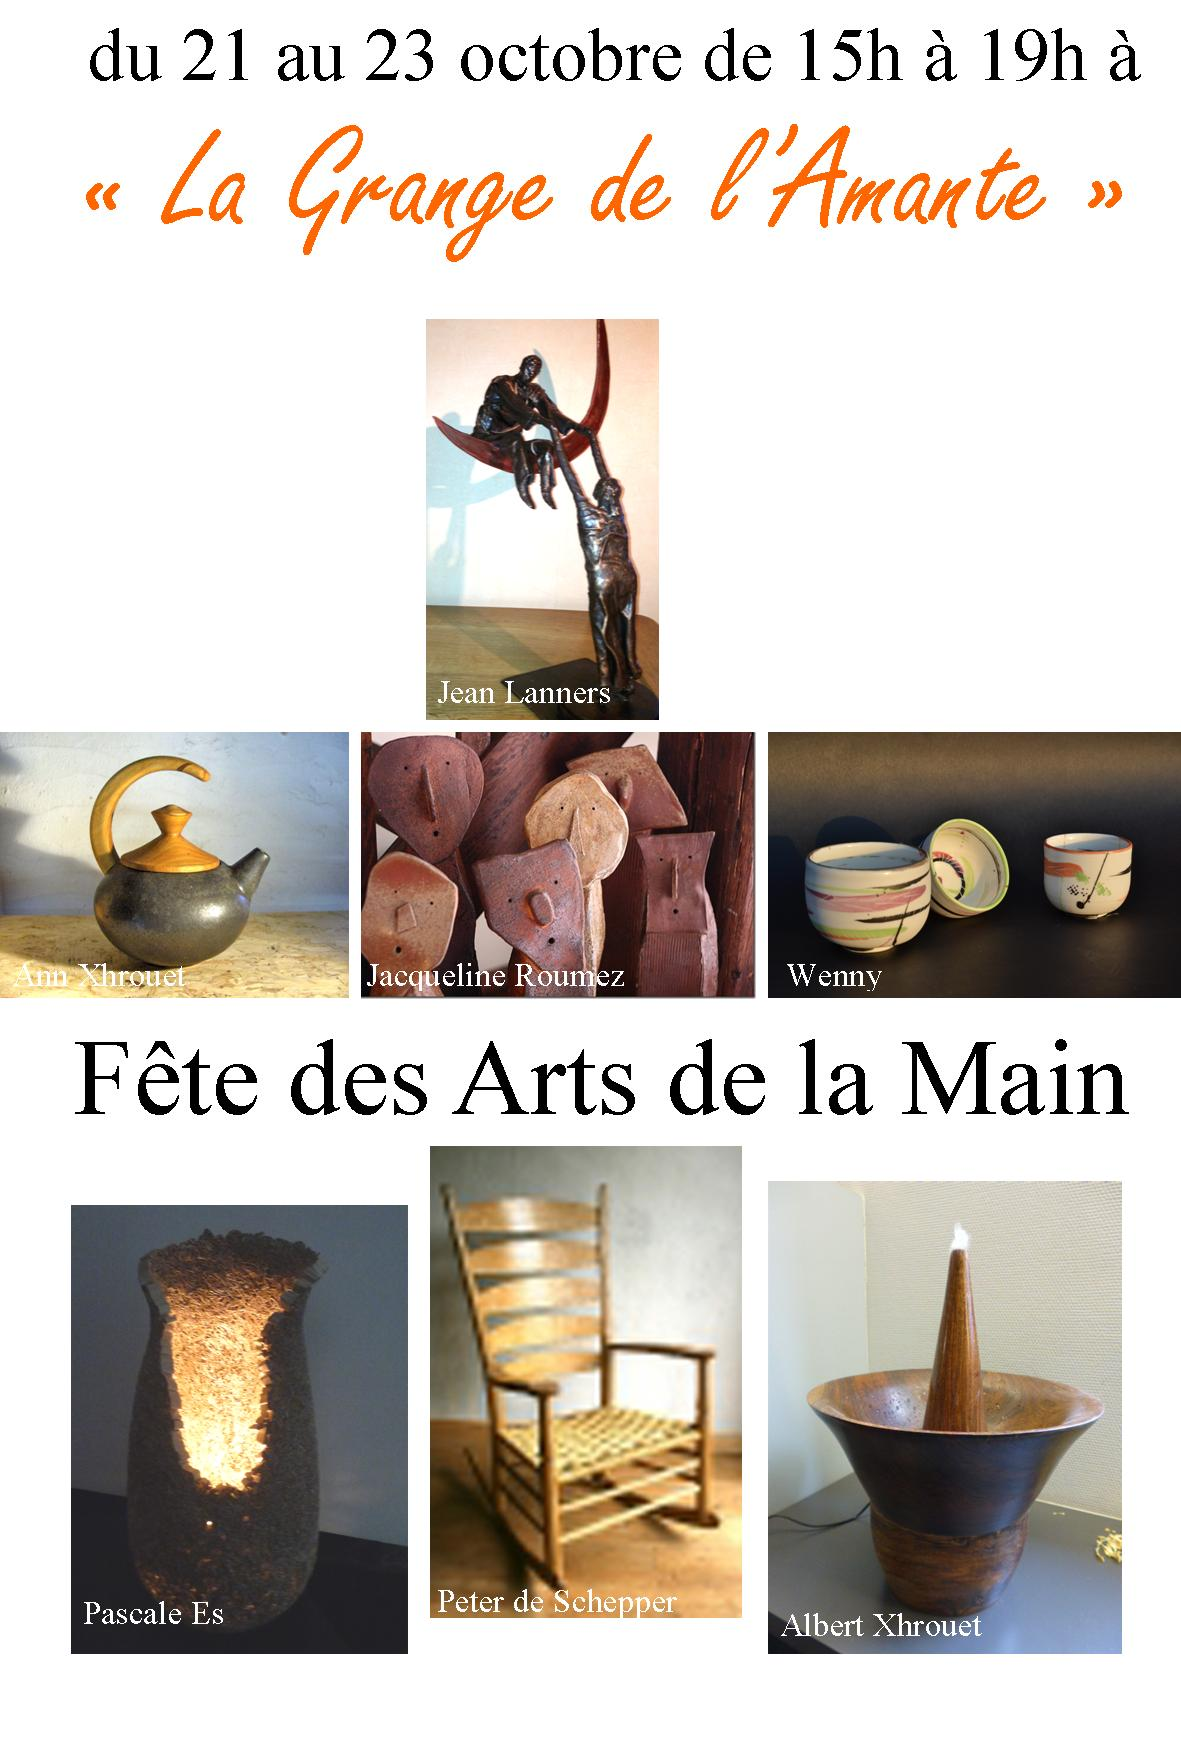 invitation-a-la-fete-des-arts-de-la-main